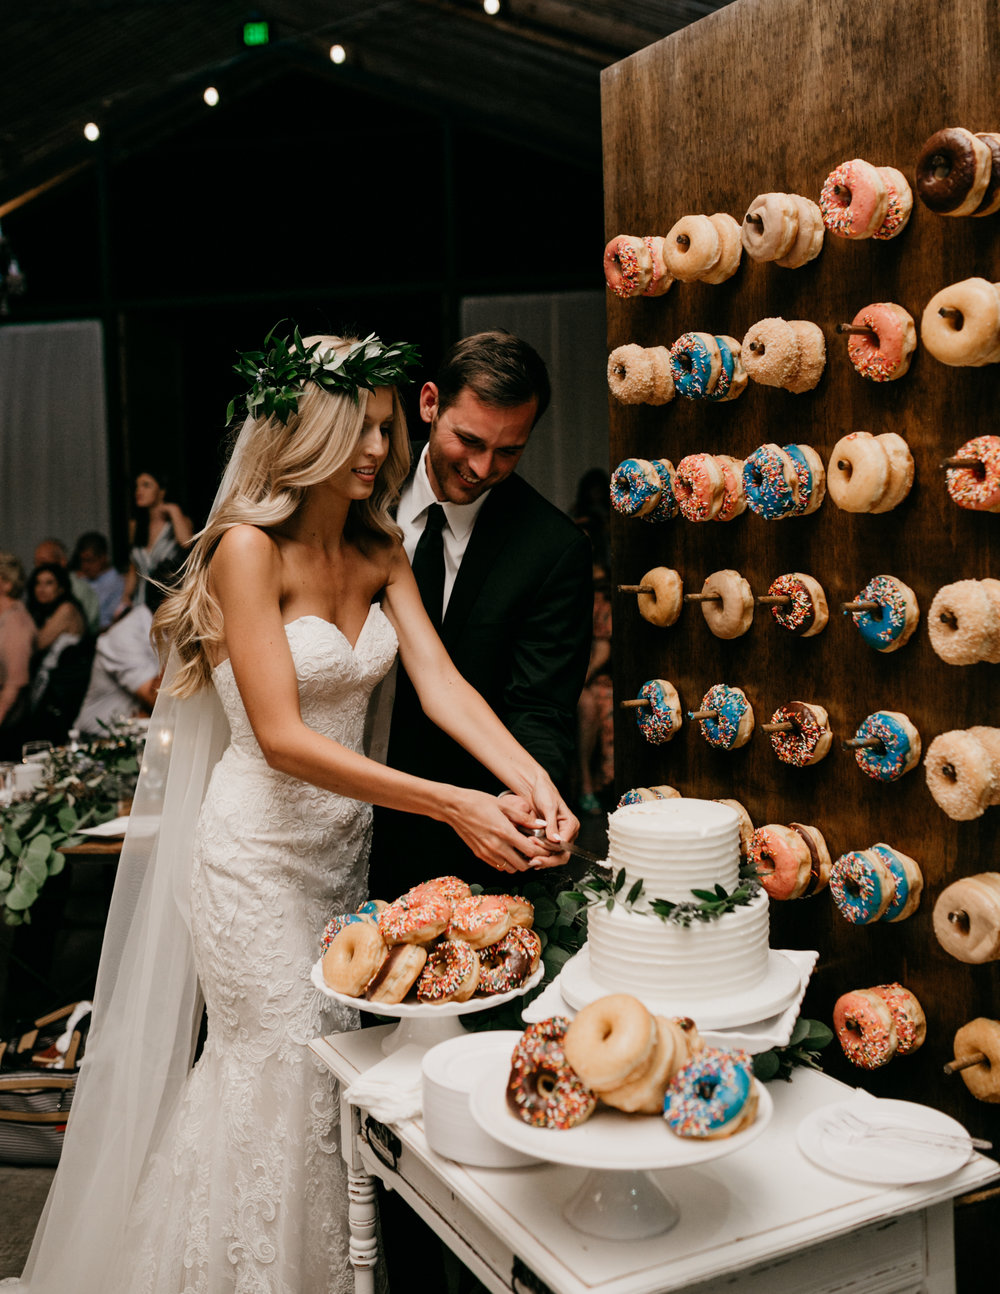 All You Need is Love and Doughnuts!  - with Tremaine Ranch - Arizona Wedding & Event, Vintage, Furniture, Tableware, & Specialty Rentals in Phoenix, Tucson, Flagstaff, Sedona, Tempe, Chandler, Mesa, Gilbert, Prescott, Payson